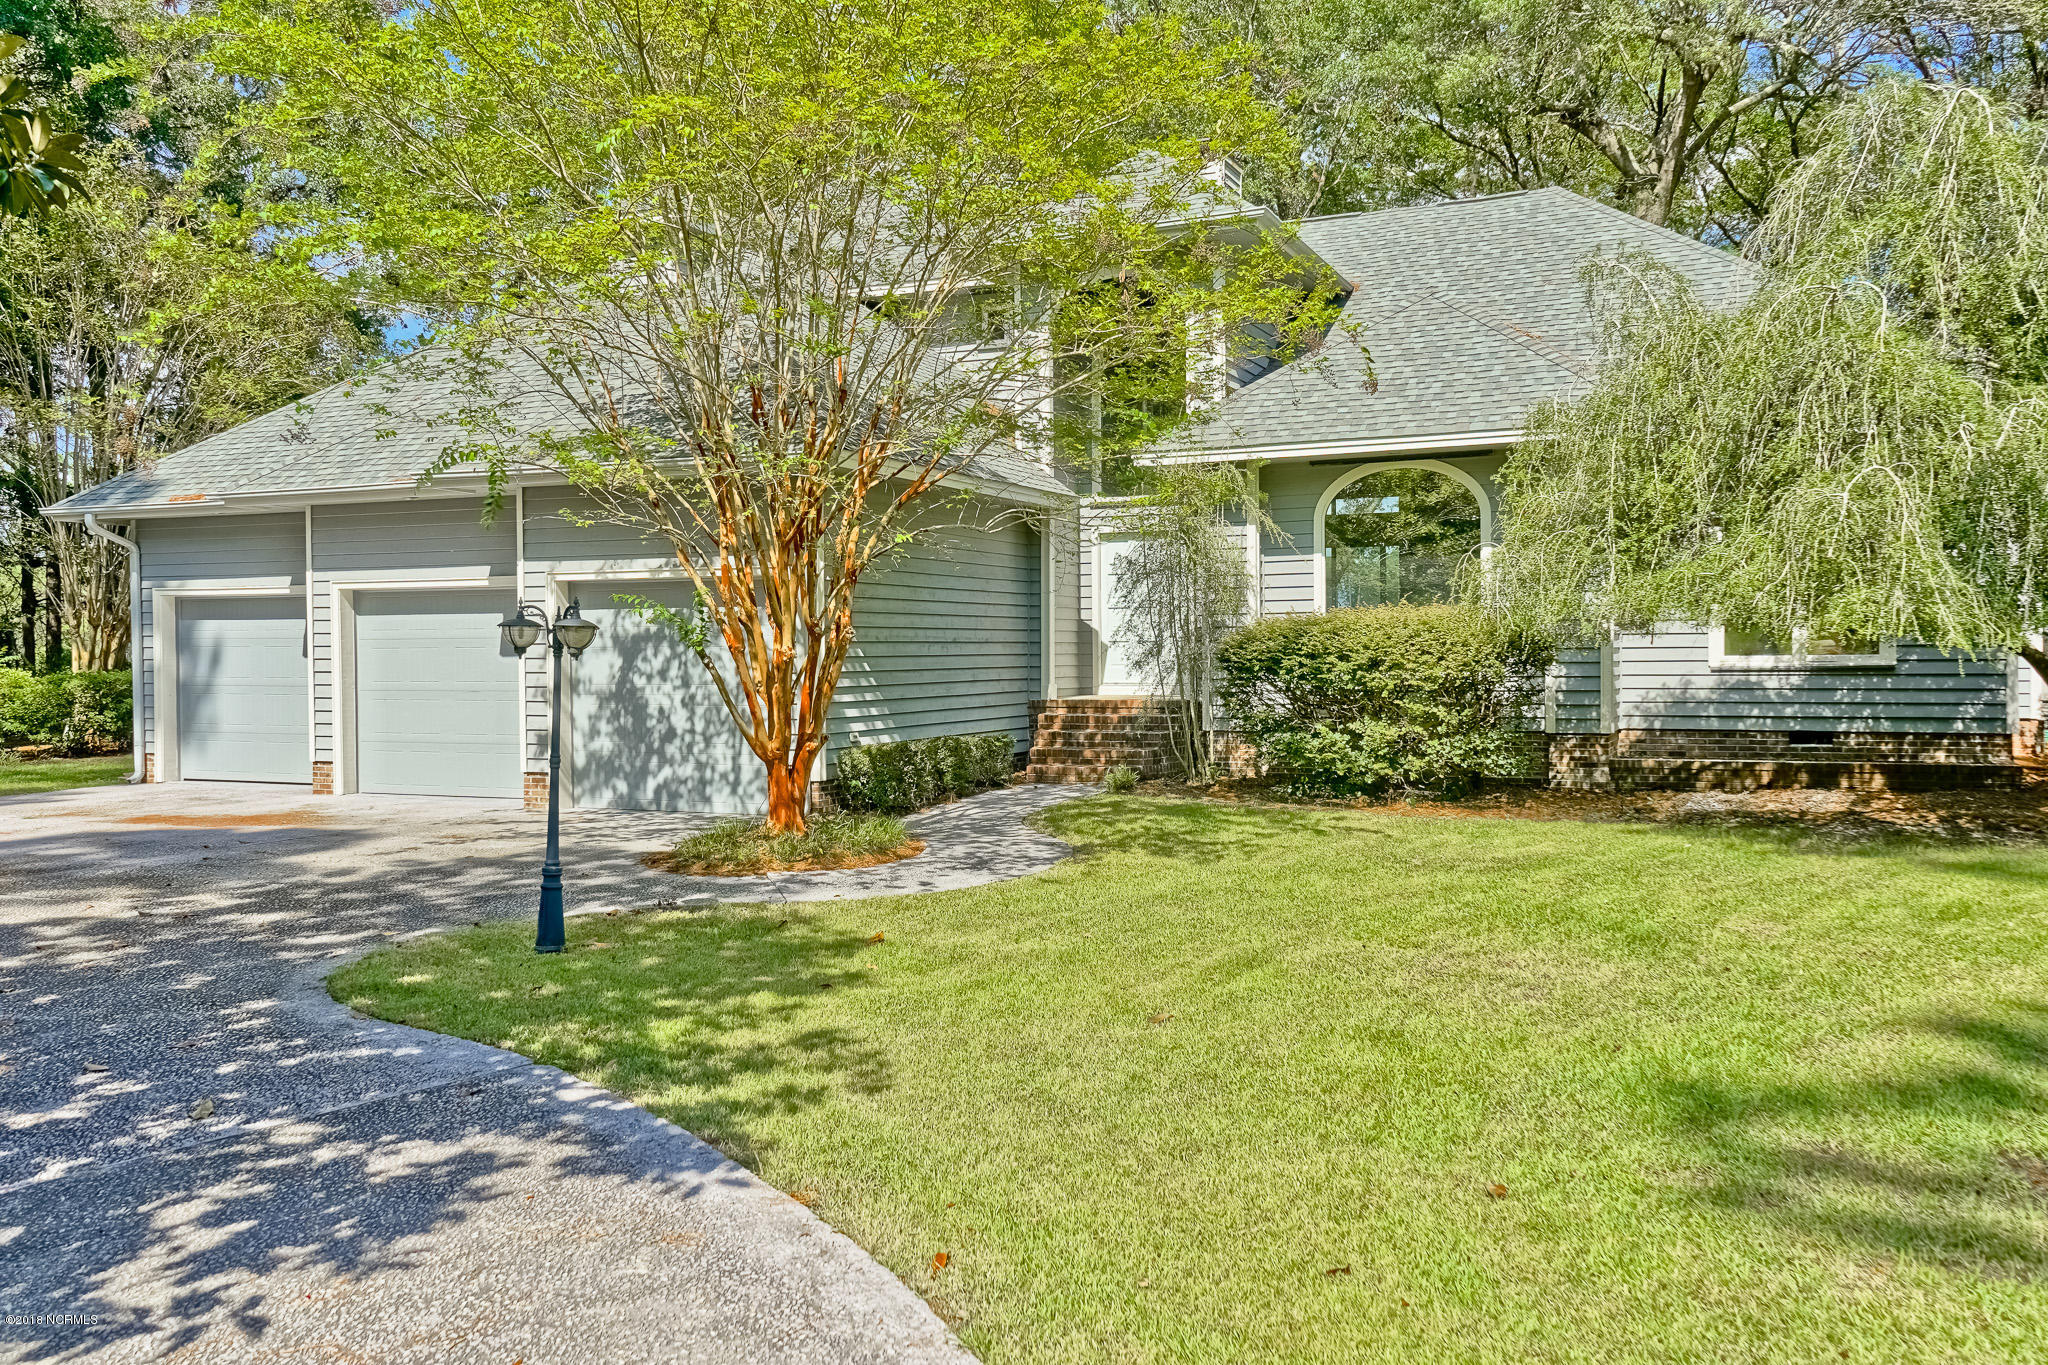 968 Oyster Pointe Drive Sunset Beach, NC 28468